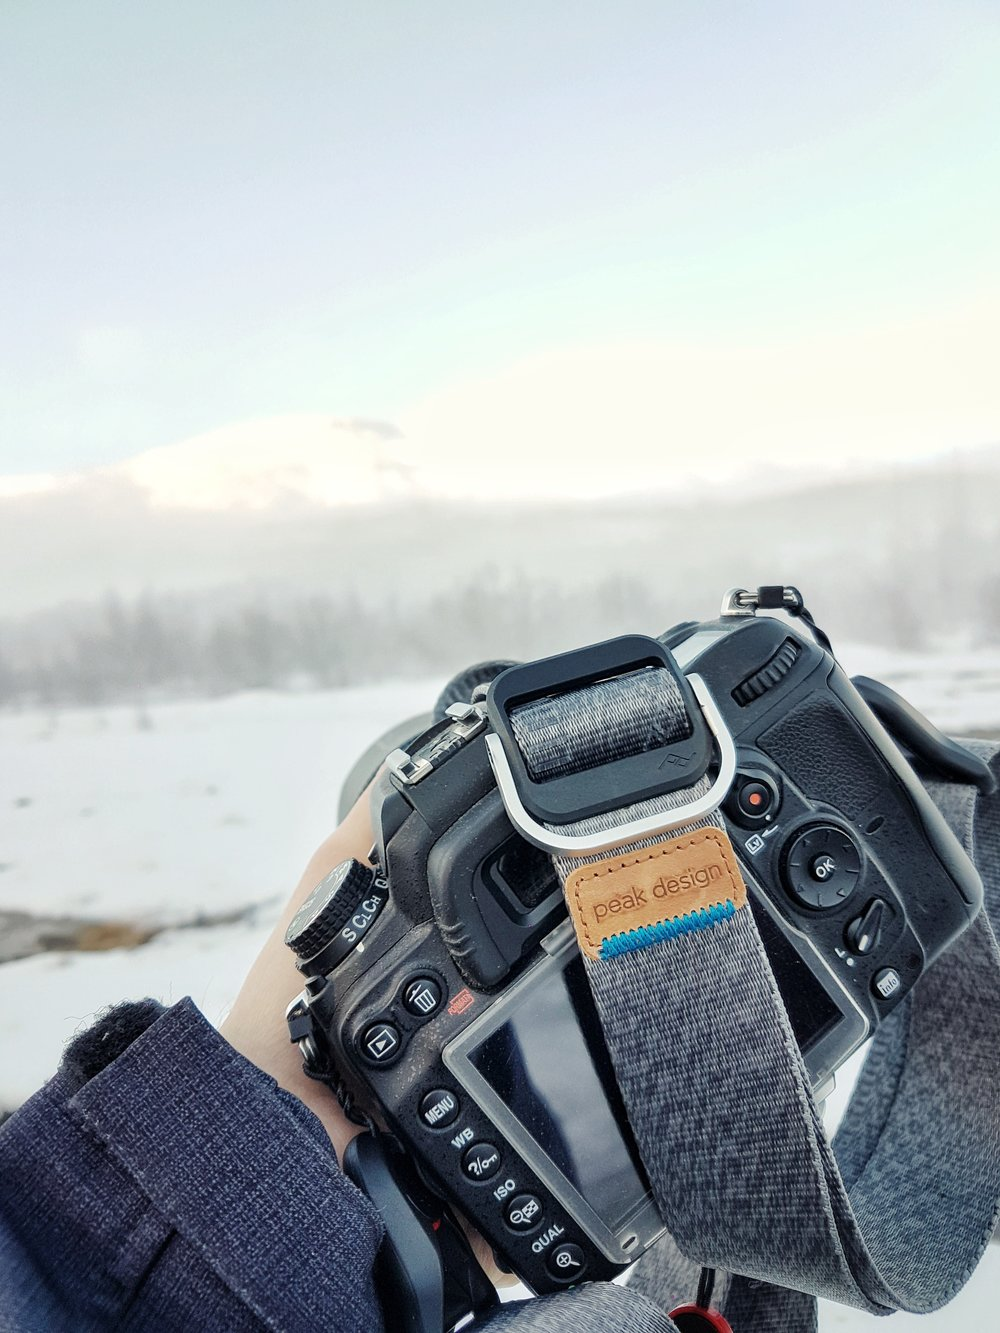 Peak design slide lite camera strap in Iceland